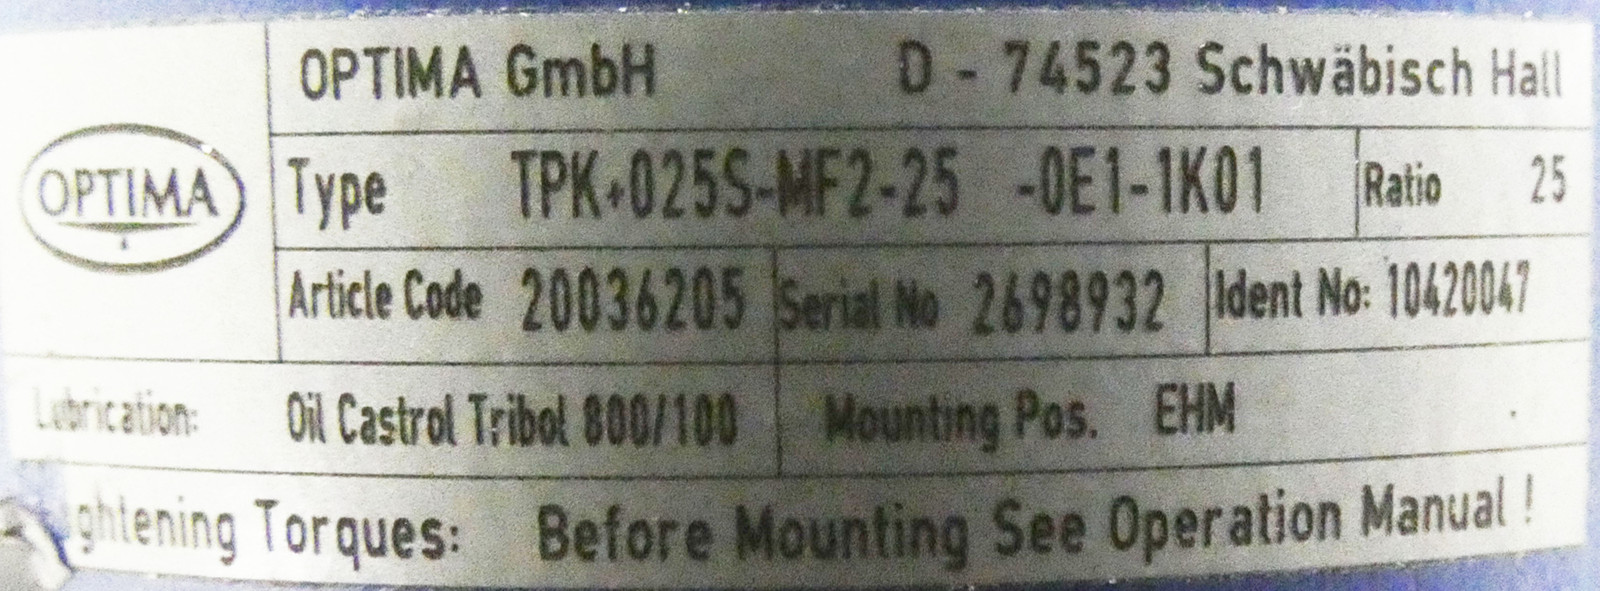 OPTIMA  TPK+025S-MF2-25-0E1-1K01 A.Code : 2006205  Getriebe -used-